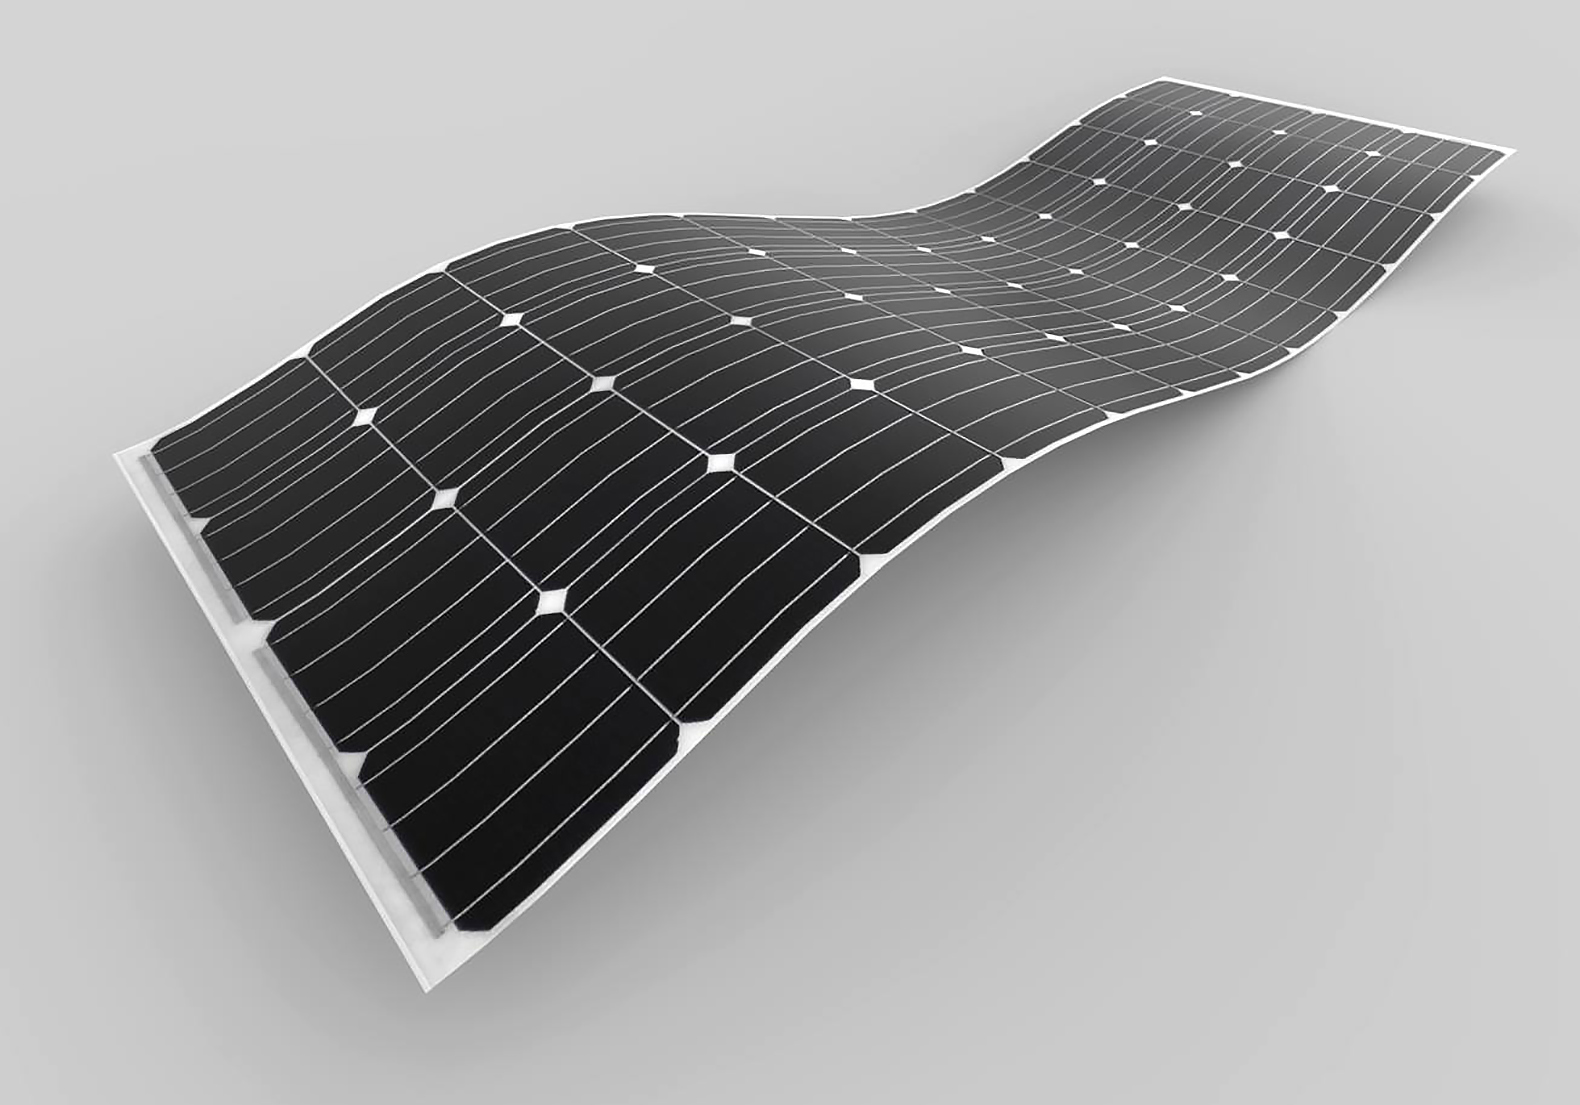 Flexible new solar panel is almost 80% lighter than traditional panels